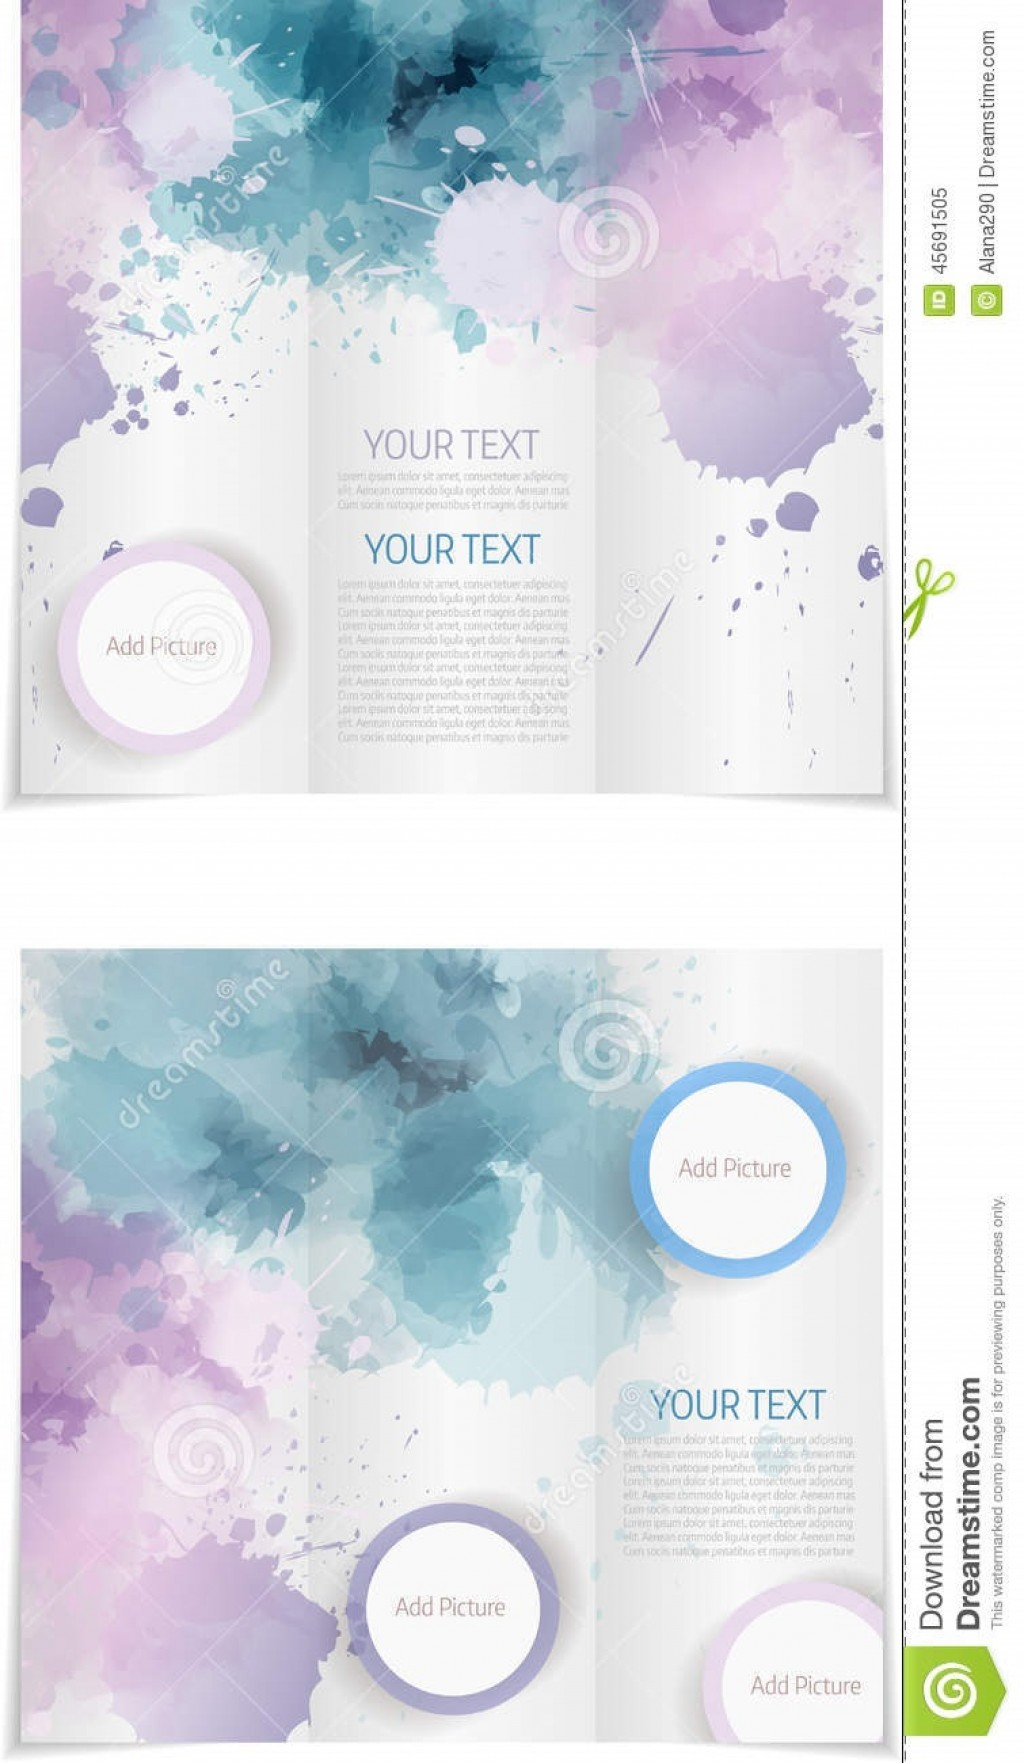 009 Stupendou Publisher Brochure Template Free Inspiration  Microsoft Download Tri FoldLarge